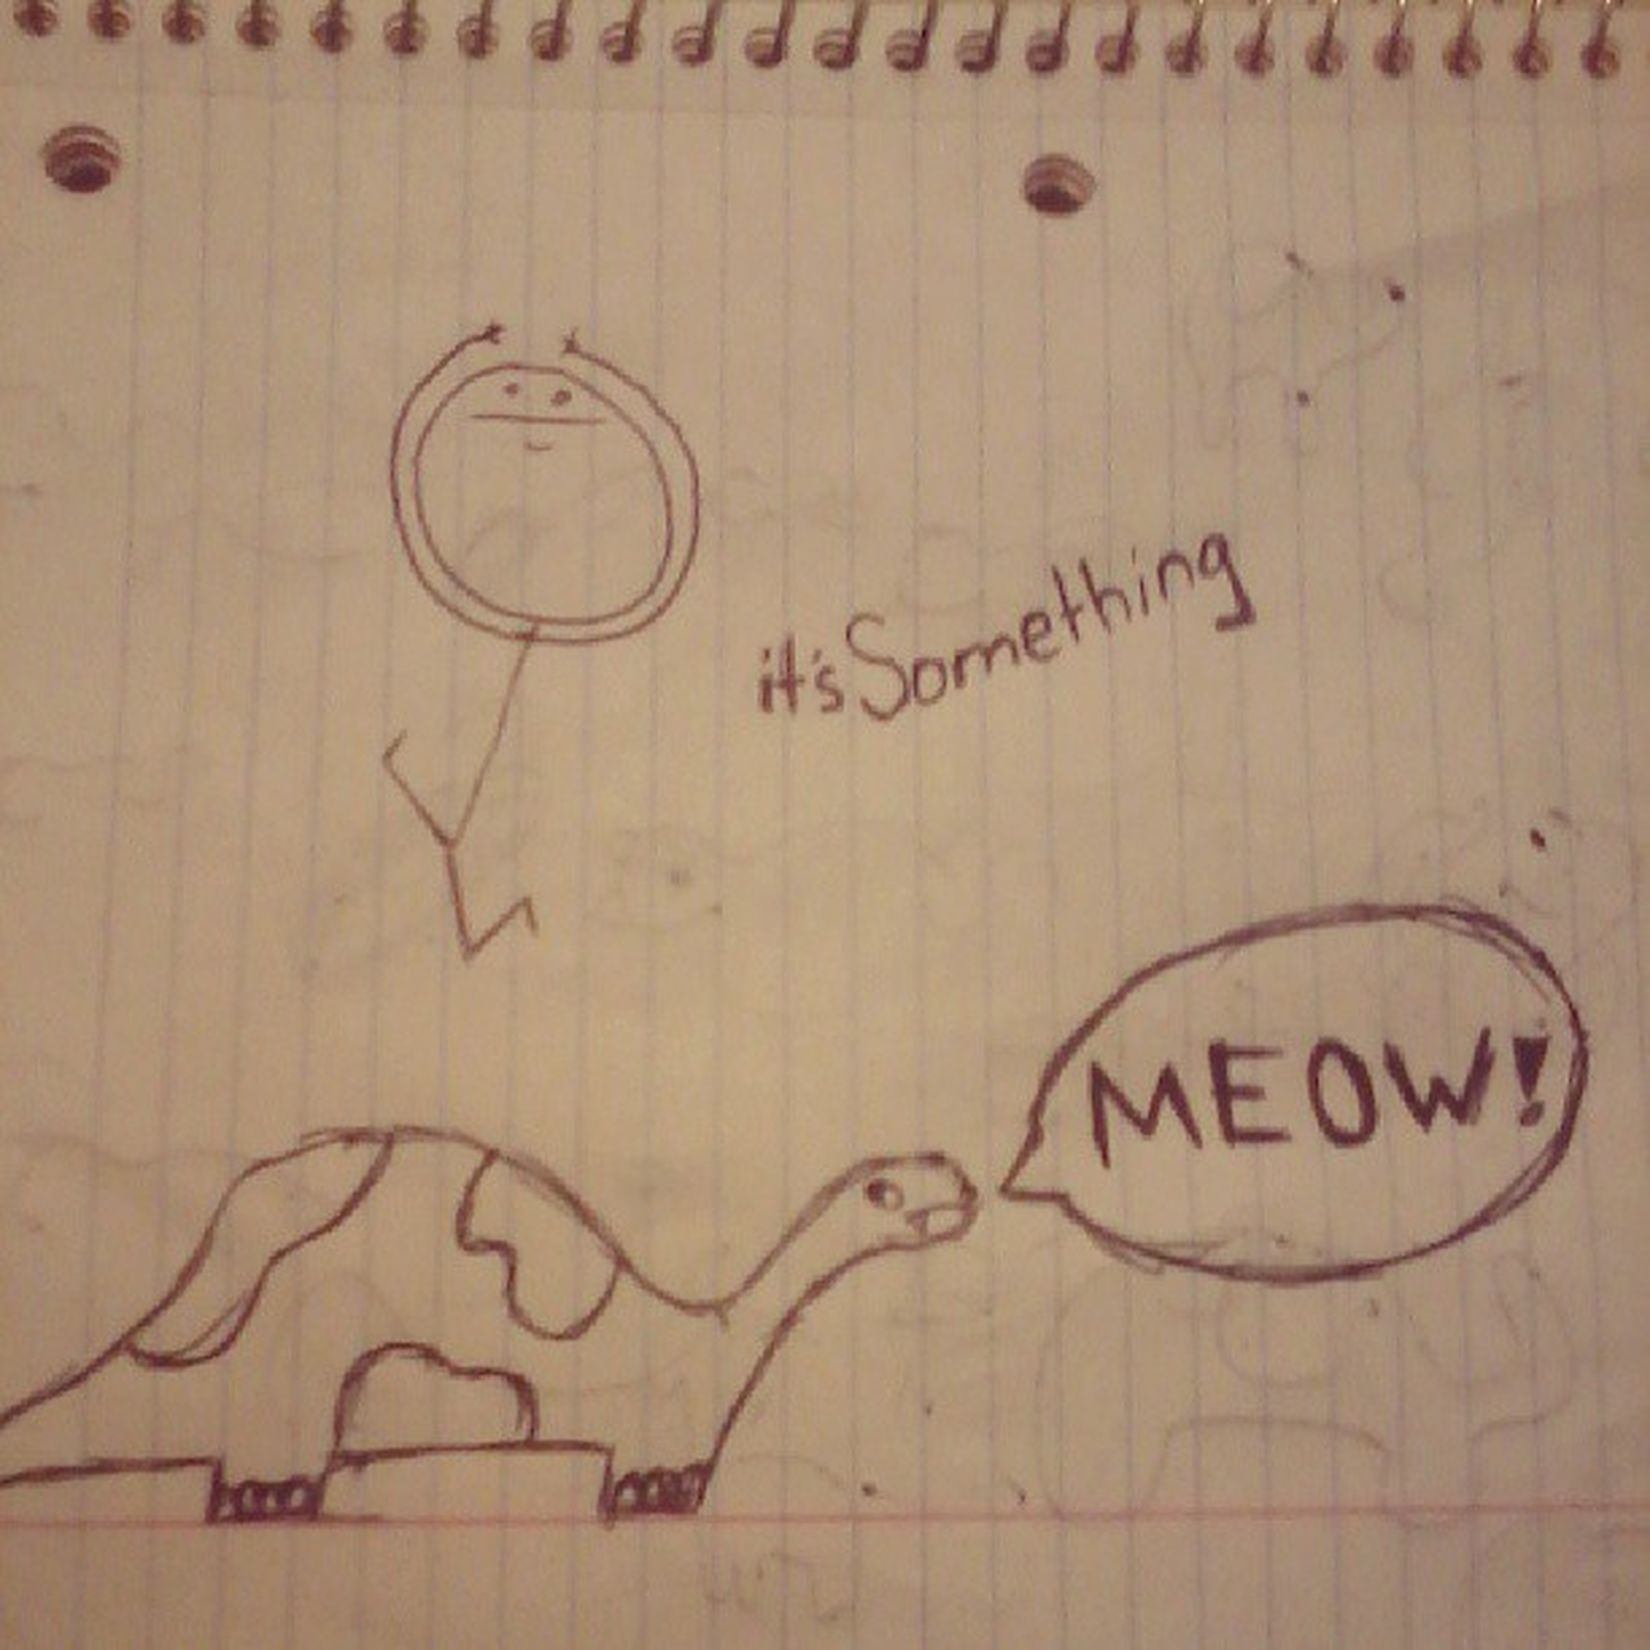 """Are dinosaurs the only thing you know now to draw?"" Itssomething Dinosaur Meow Stickfigure drawing art ink"